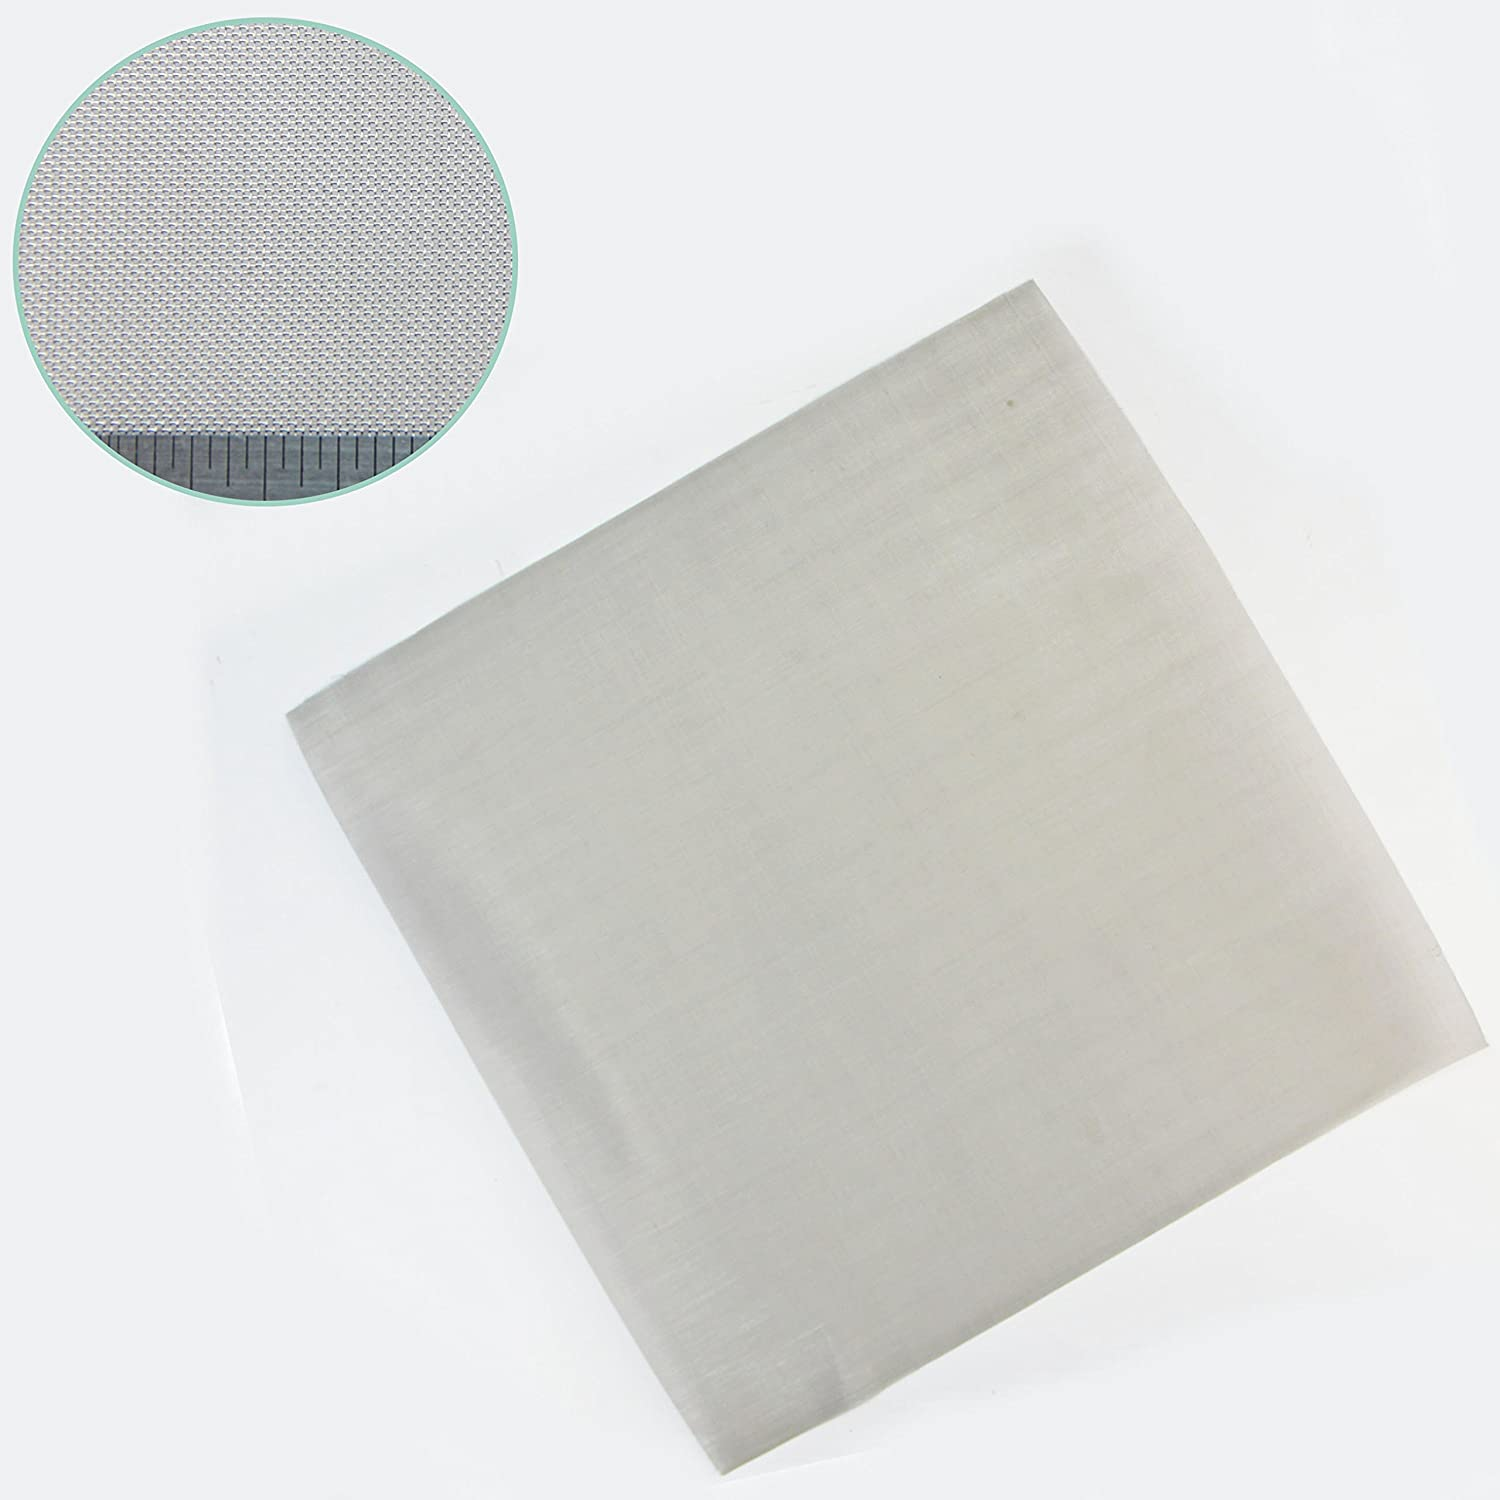 Fine - #50 x 0.2mm (50 Holes Per Linear Inch) - Stainless Steel Woven Mesh by THE MESH COMPANY - 300 x 300mm Sheet